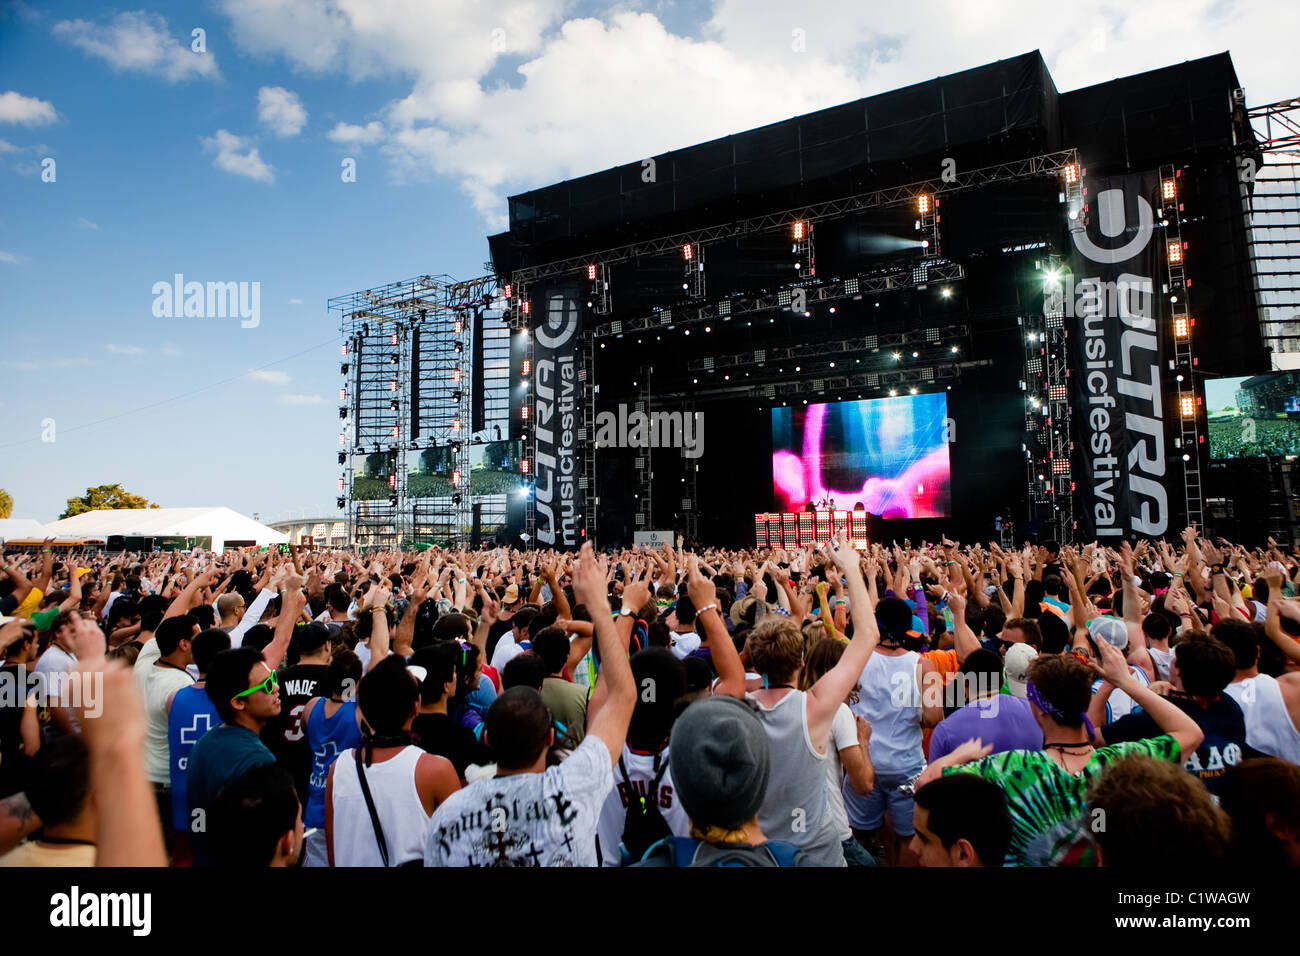 The Main Stage at the Ultra Music Festival in Miami, Florida, USA taken on March 25, 2011. - Stock Image